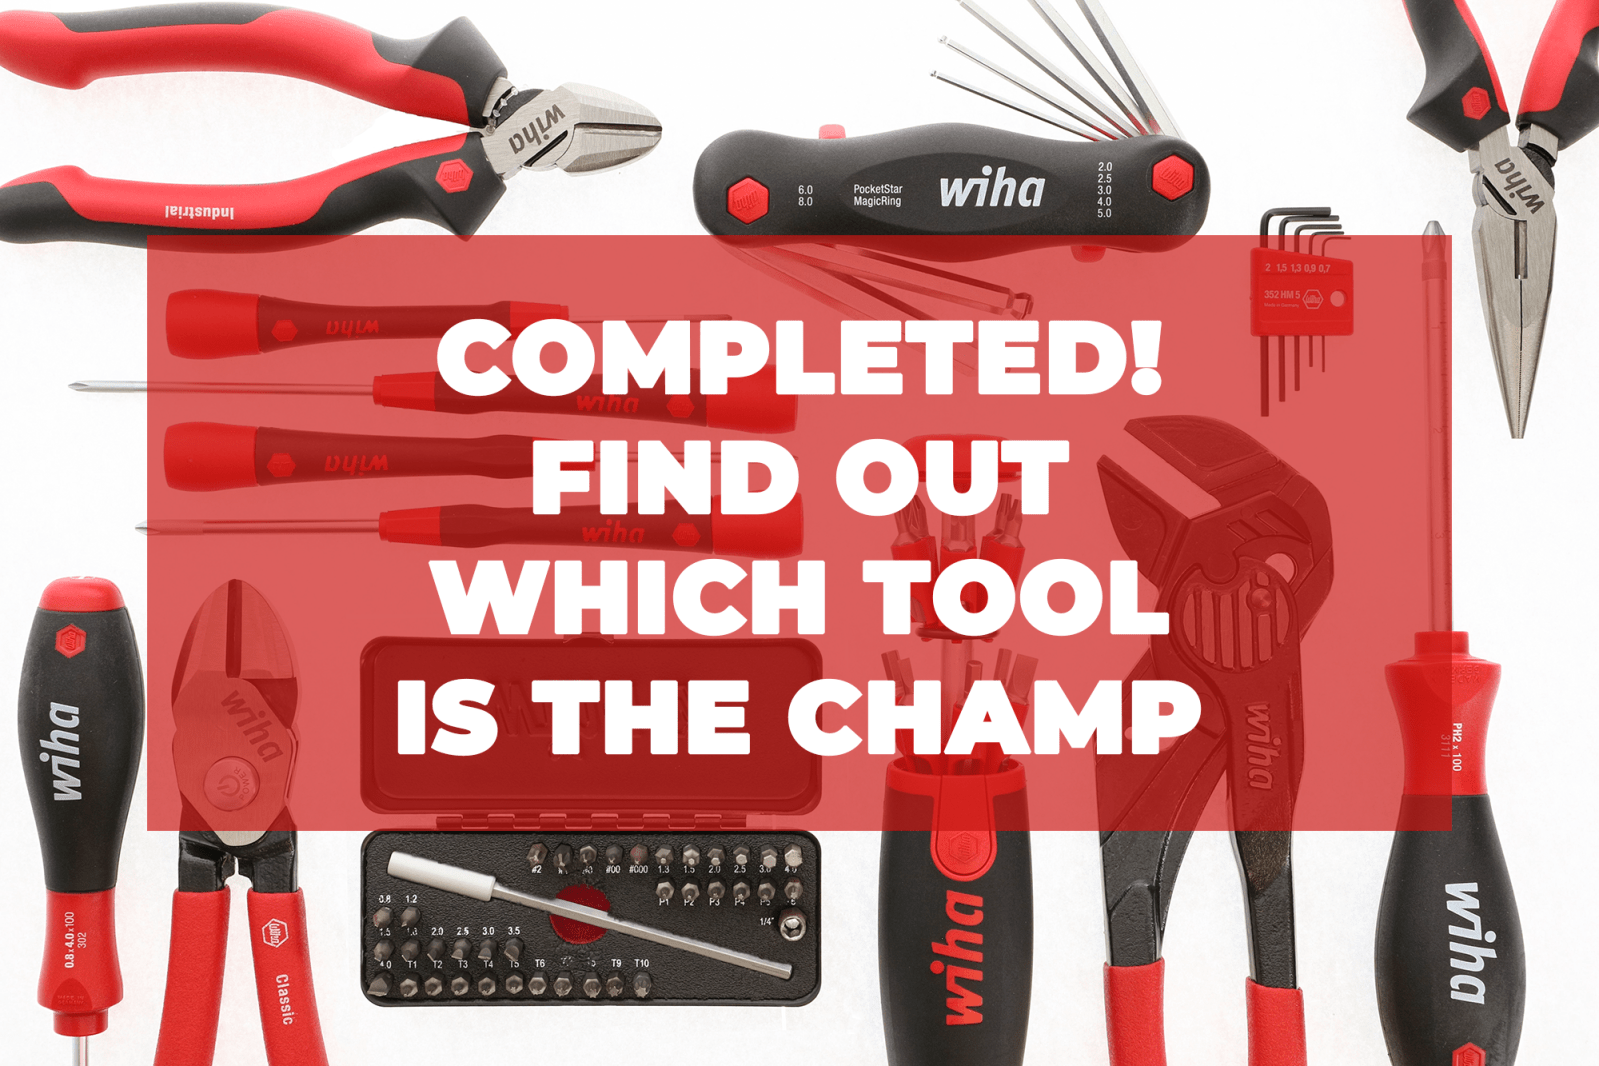 Tool Madness completed by Wiha Tools